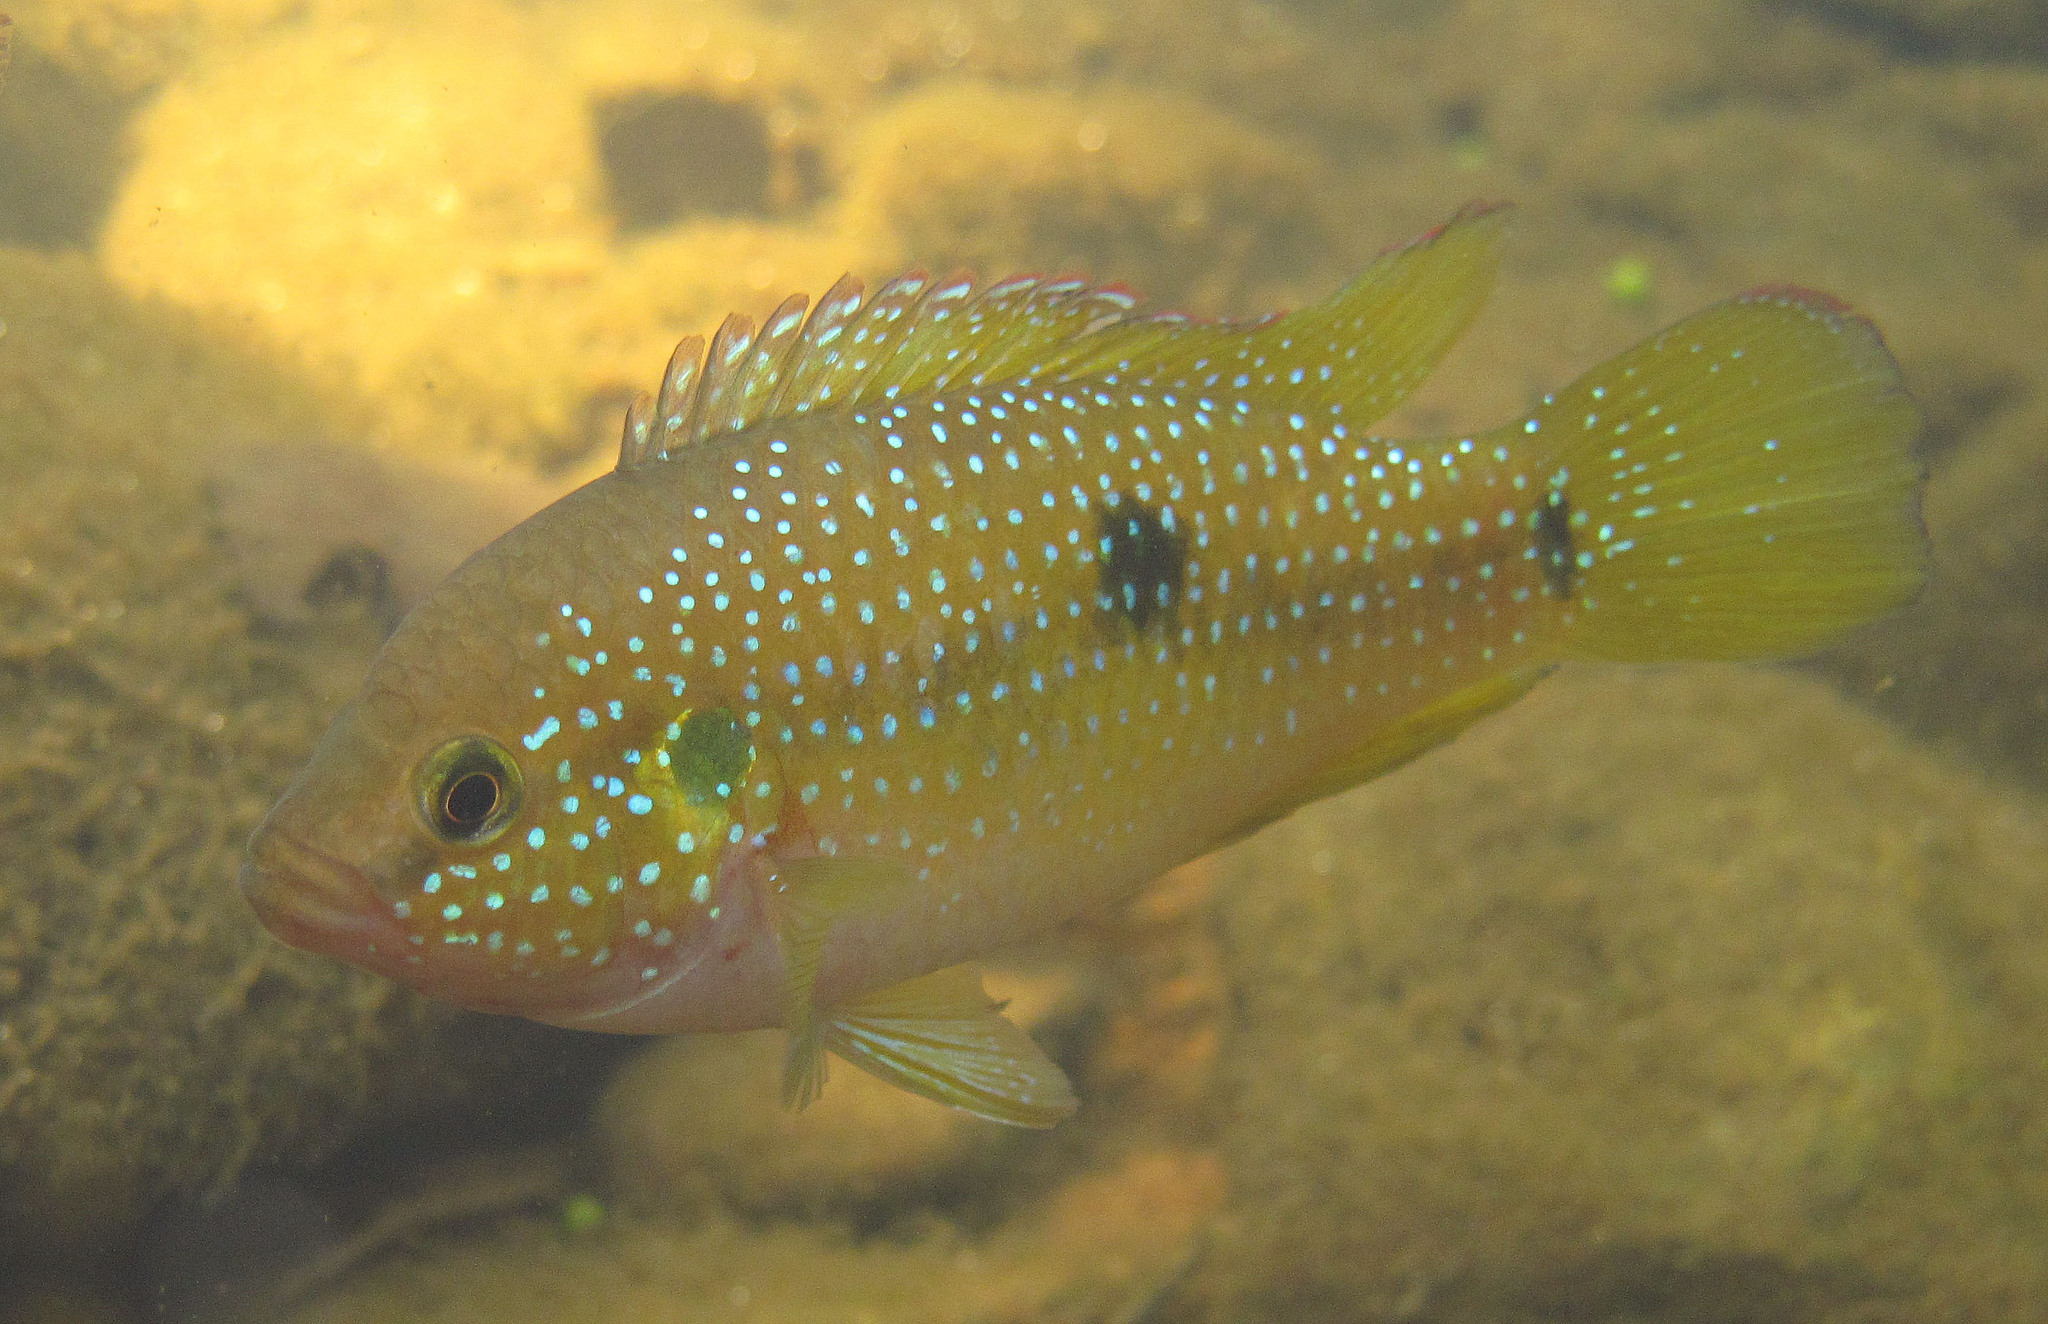 Image of spotted jewelfish